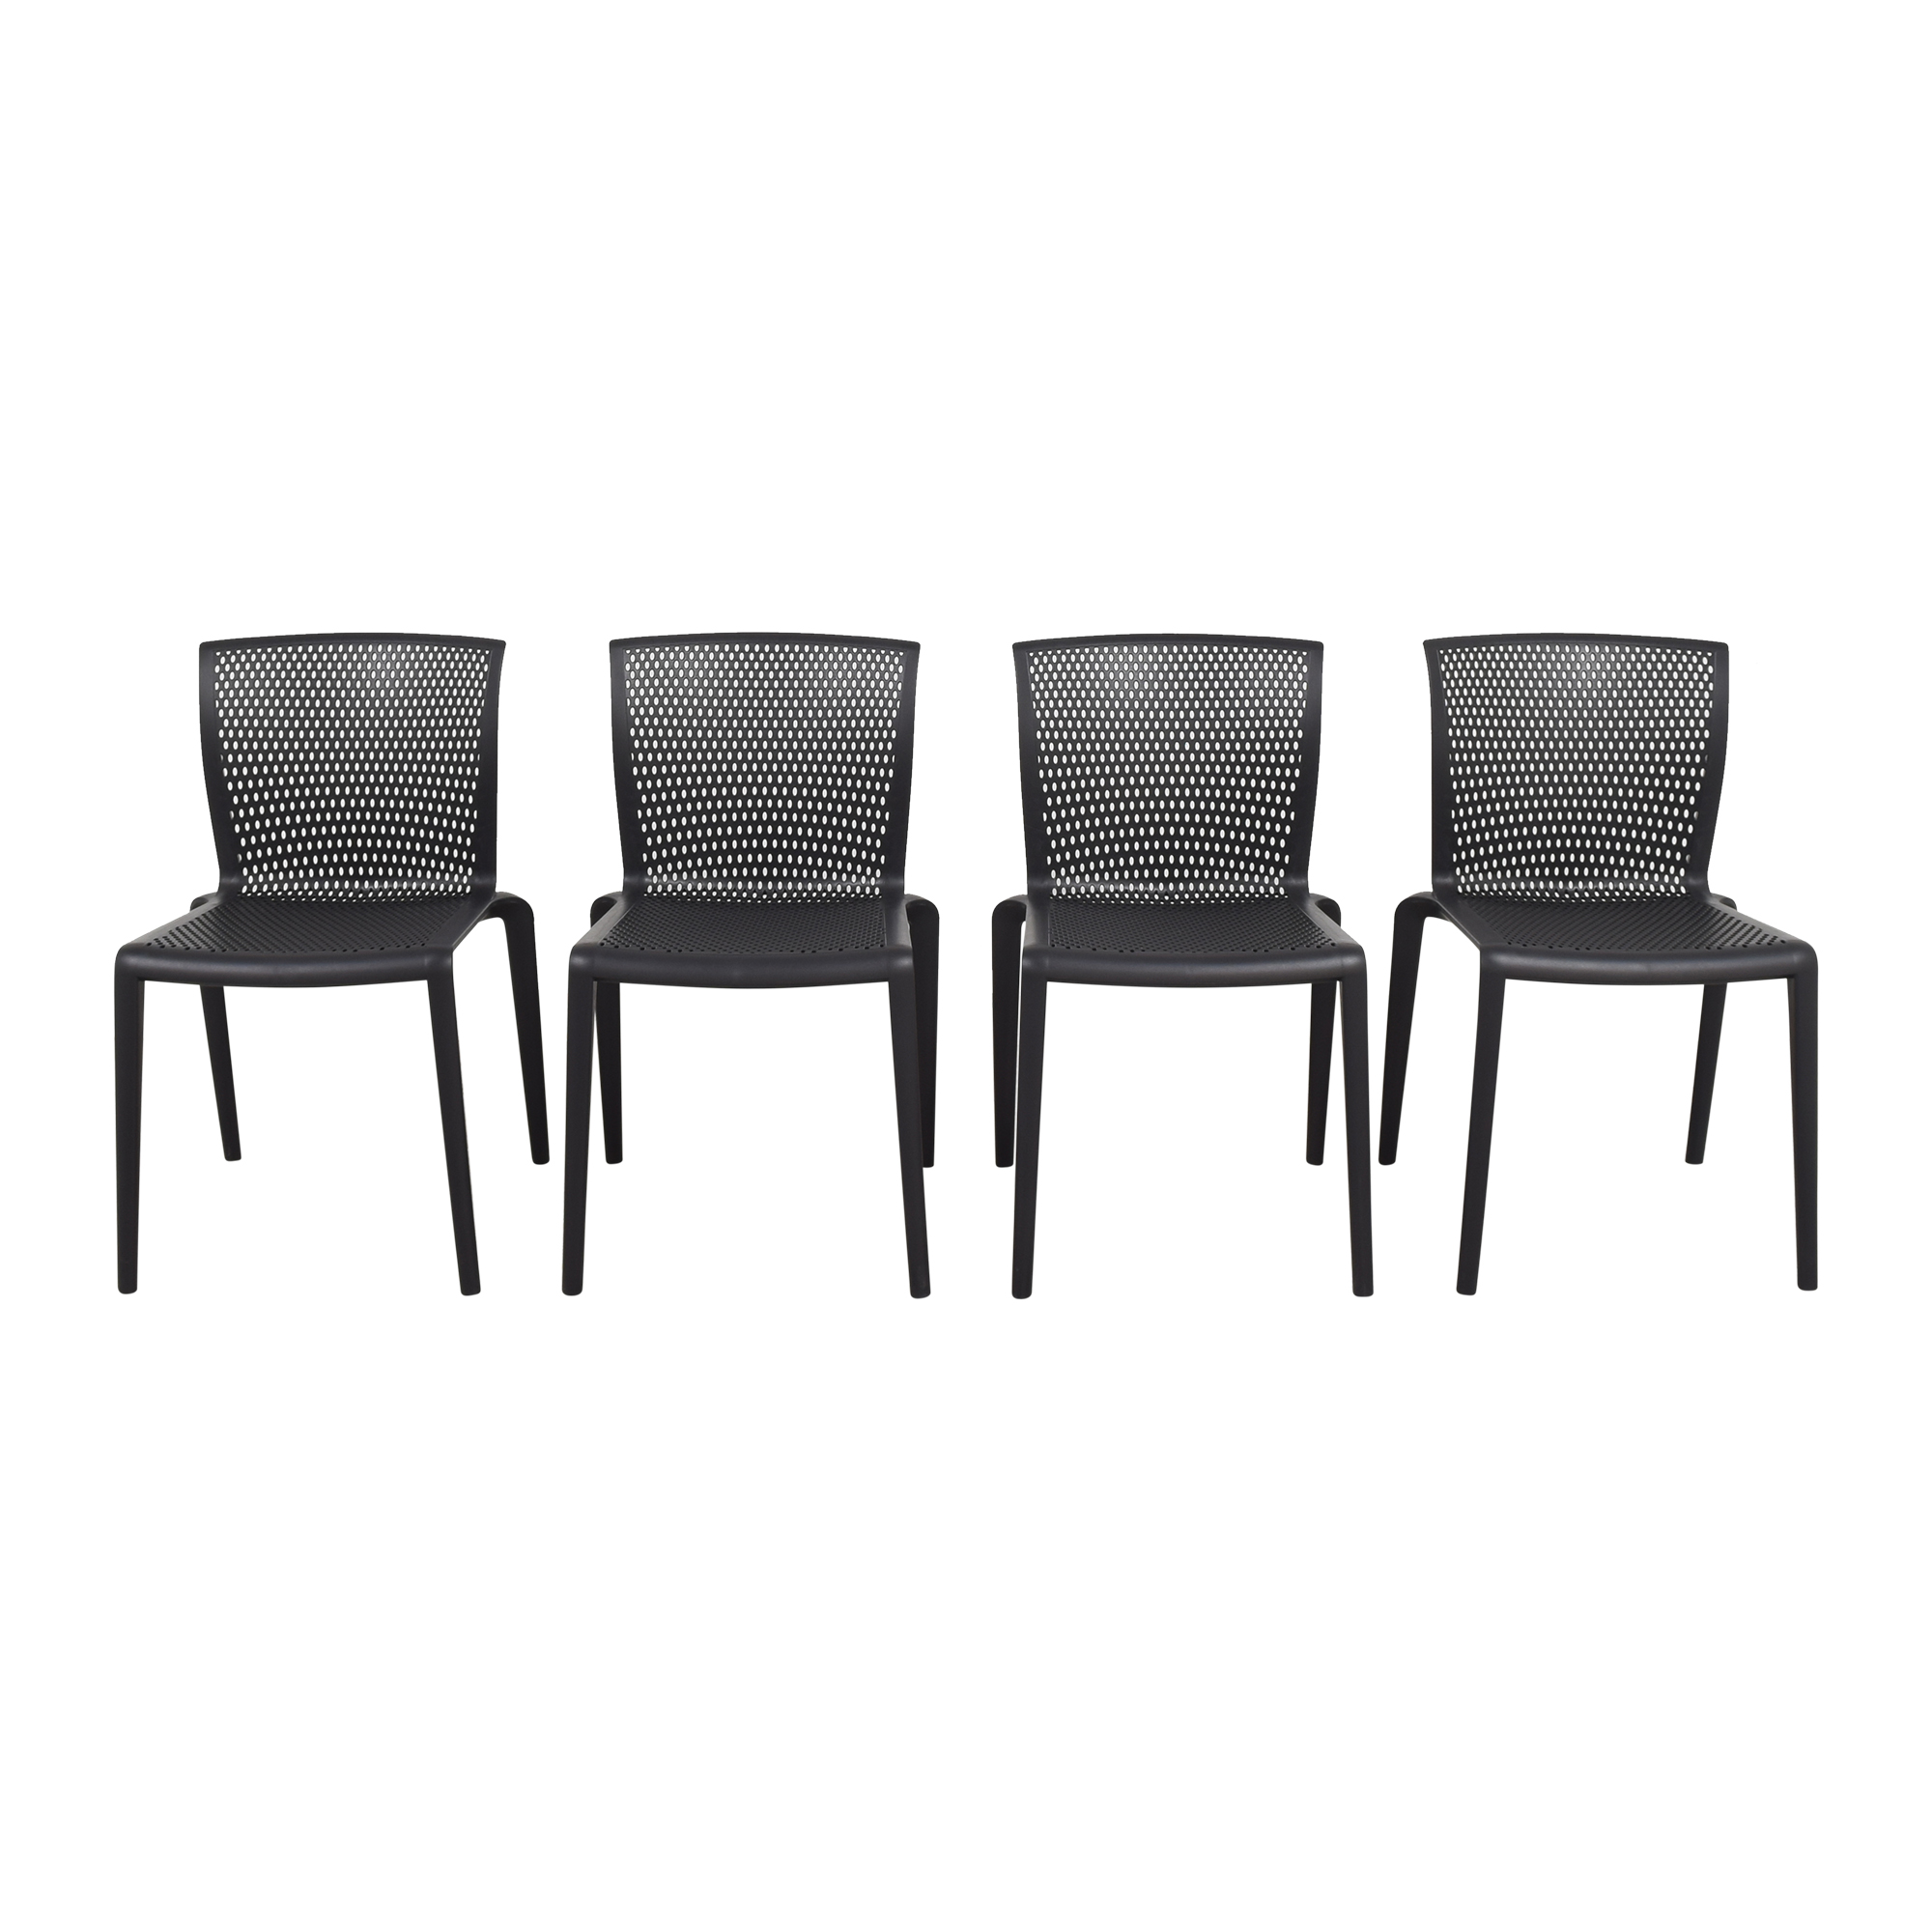 Global Furniture Group Global Furniture Group Spyker Chairs second hand